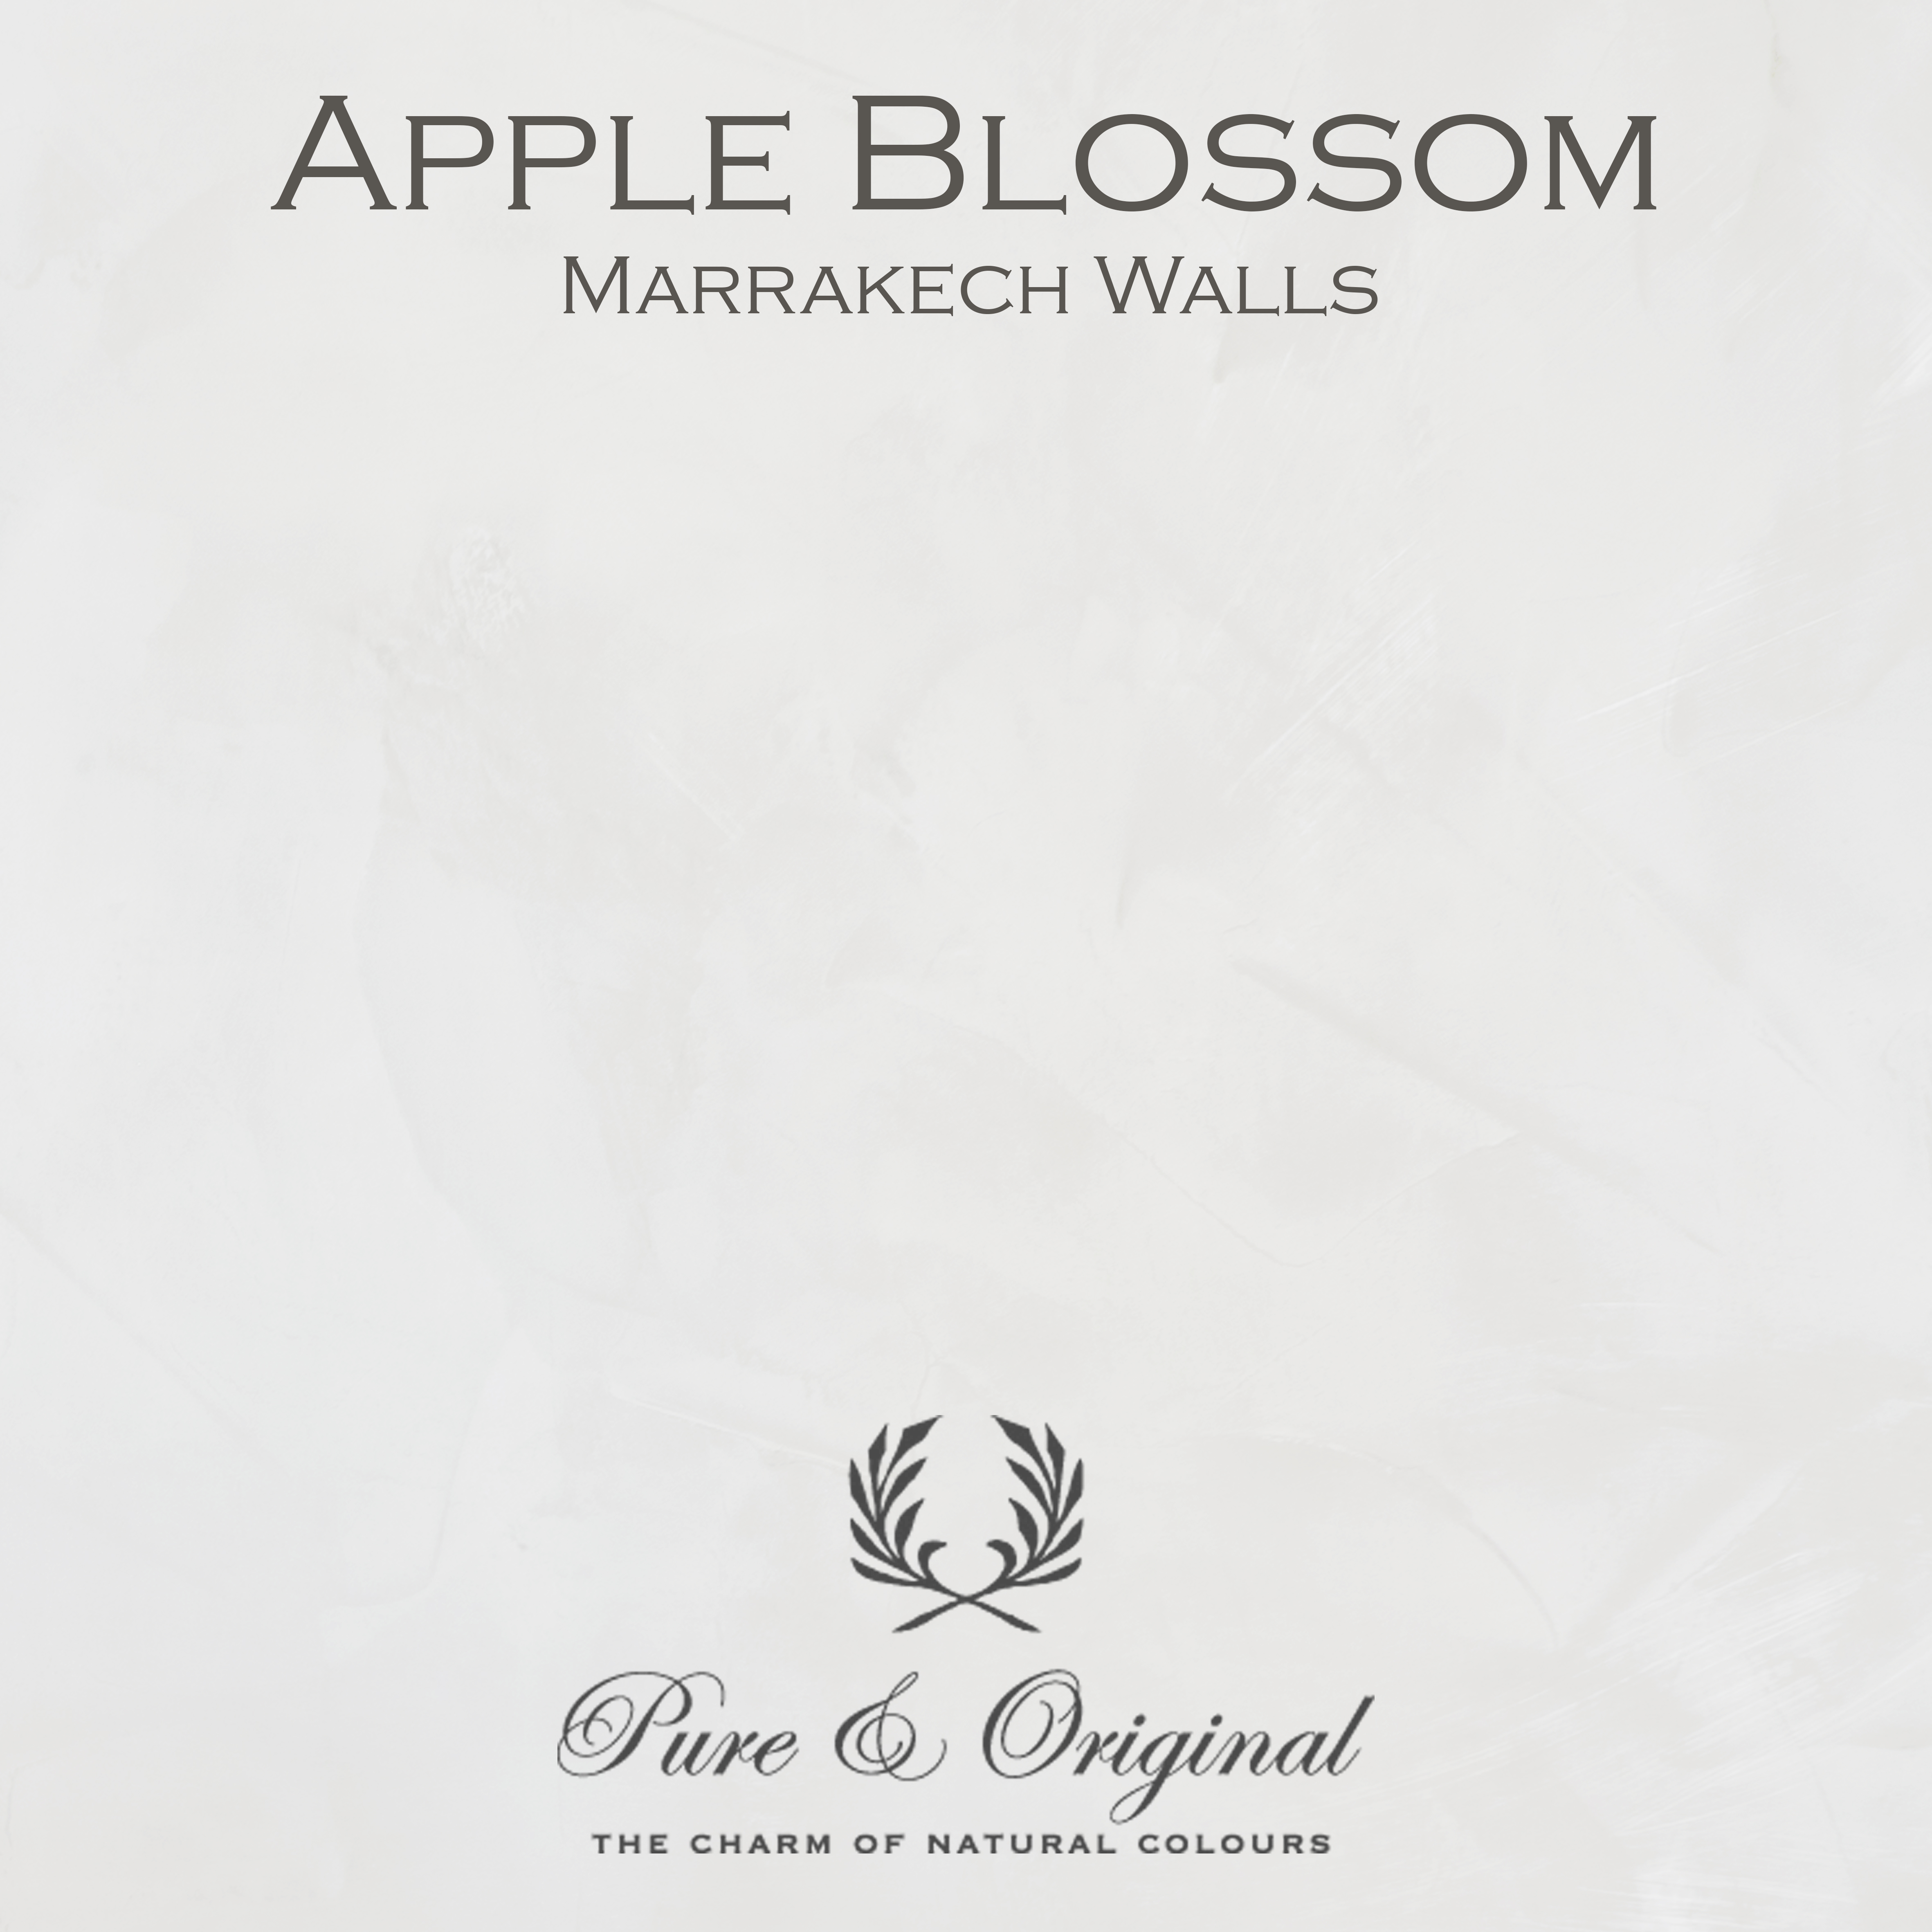 Kulör Apple Blossom, Marrakech Walls  kalkfärg